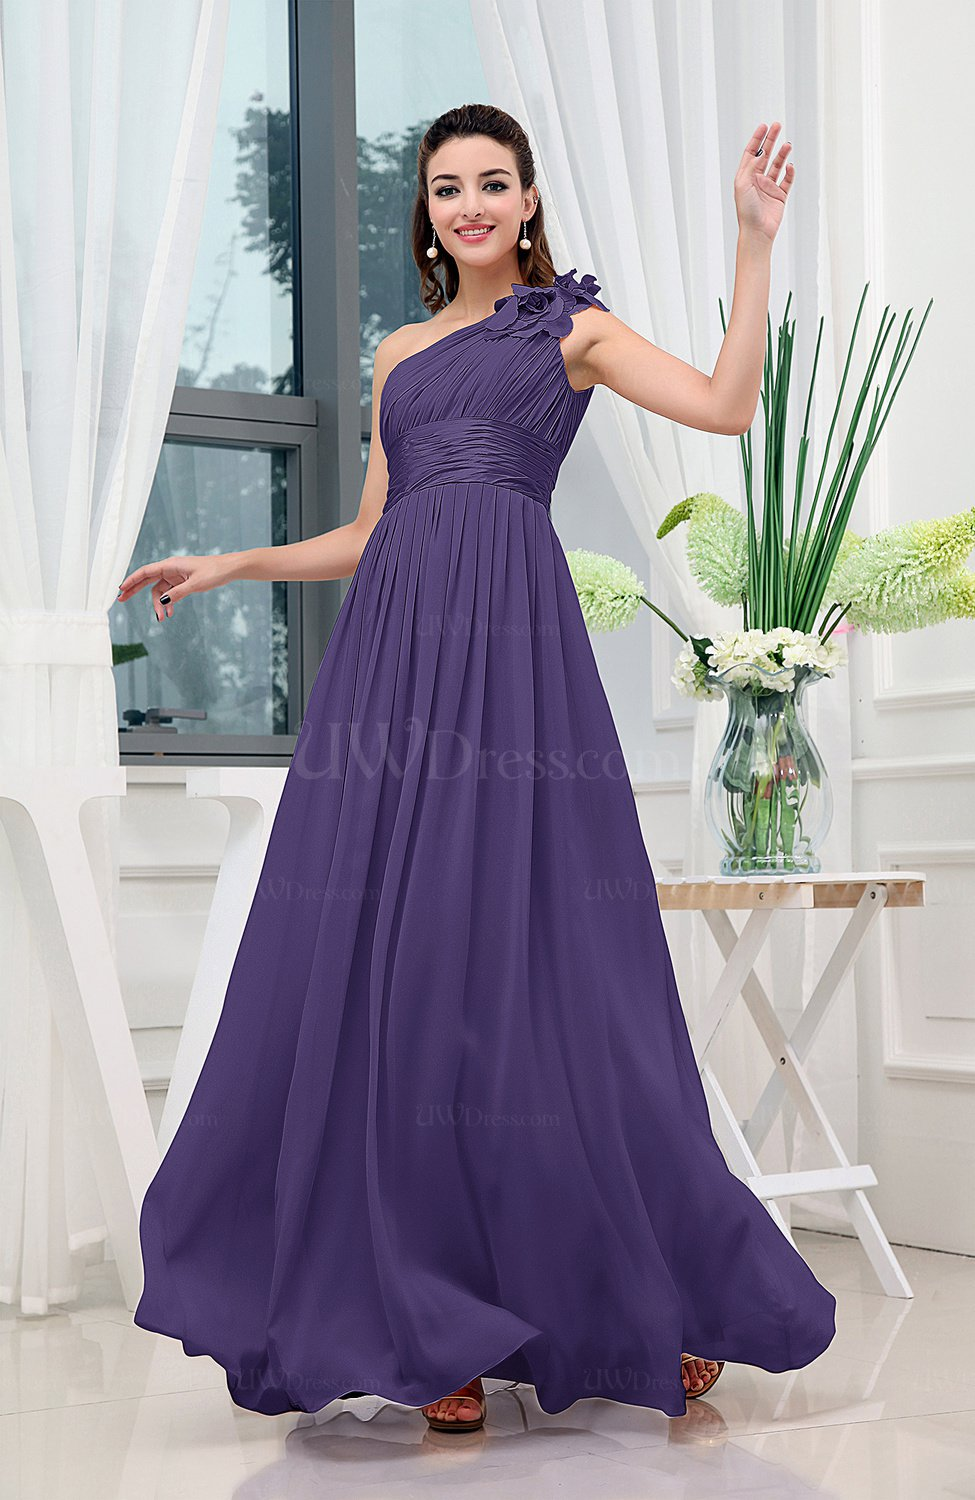 766deaccce8 Royal Purple Classic A-line One Shoulder Sleeveless Zipper Sash Cocktail  Dresses (Style D26602)